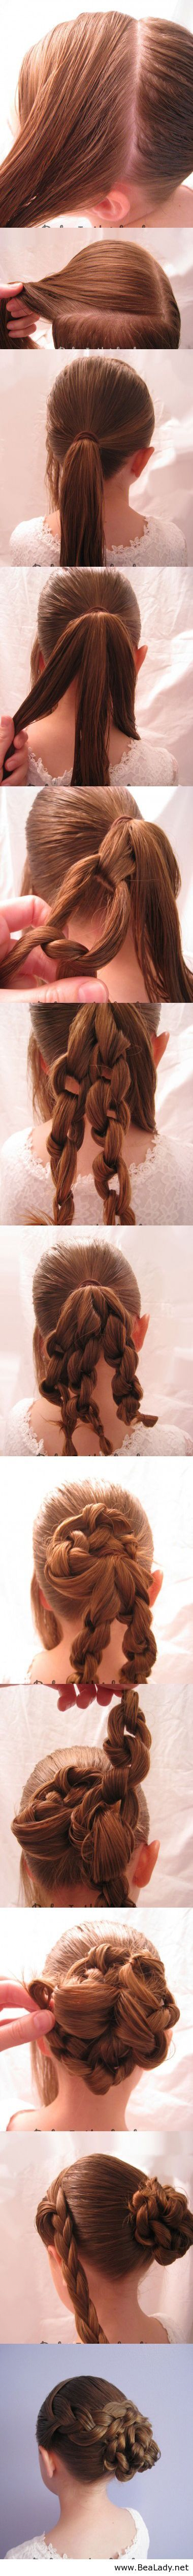 Totally going to try this Super Easy Knotted Bun Updo and Simple Bun Hairstyle Tutorials - BeaLady.net